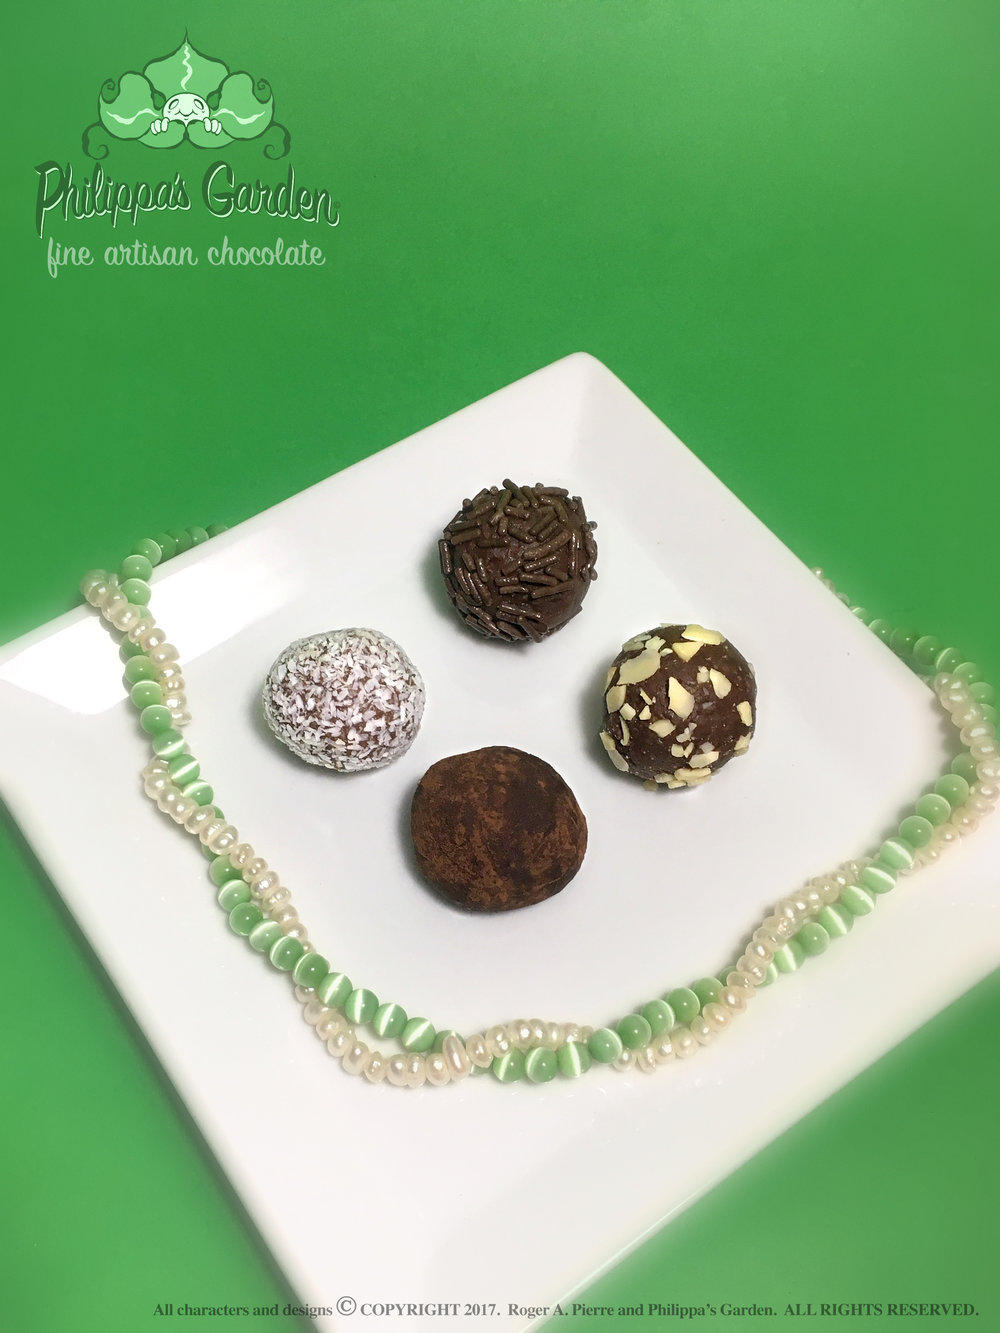 Truffles - Chocolate ganache infused with delightful flavours and rolled in a selection of coatings.